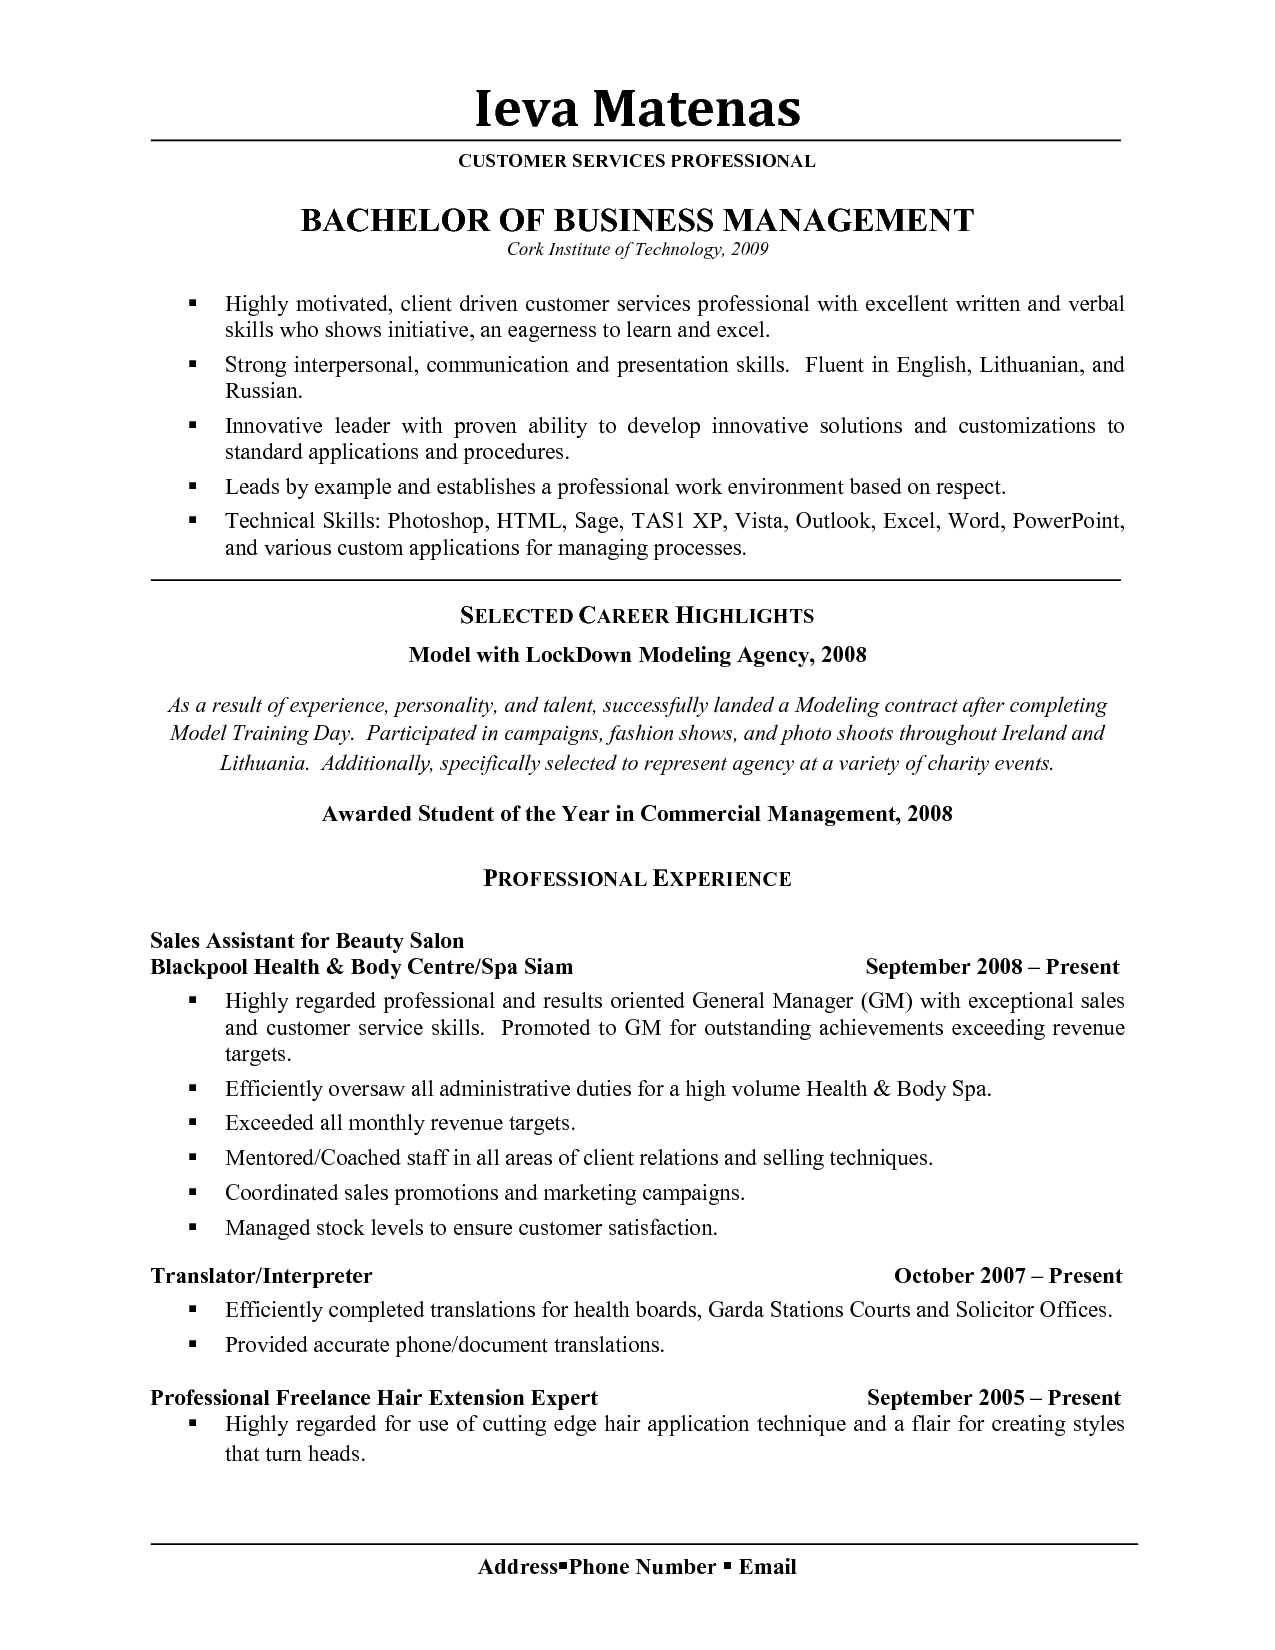 Business Owner Resume Sample Excellent Receptionist Resume  Document Sample  Resume Design